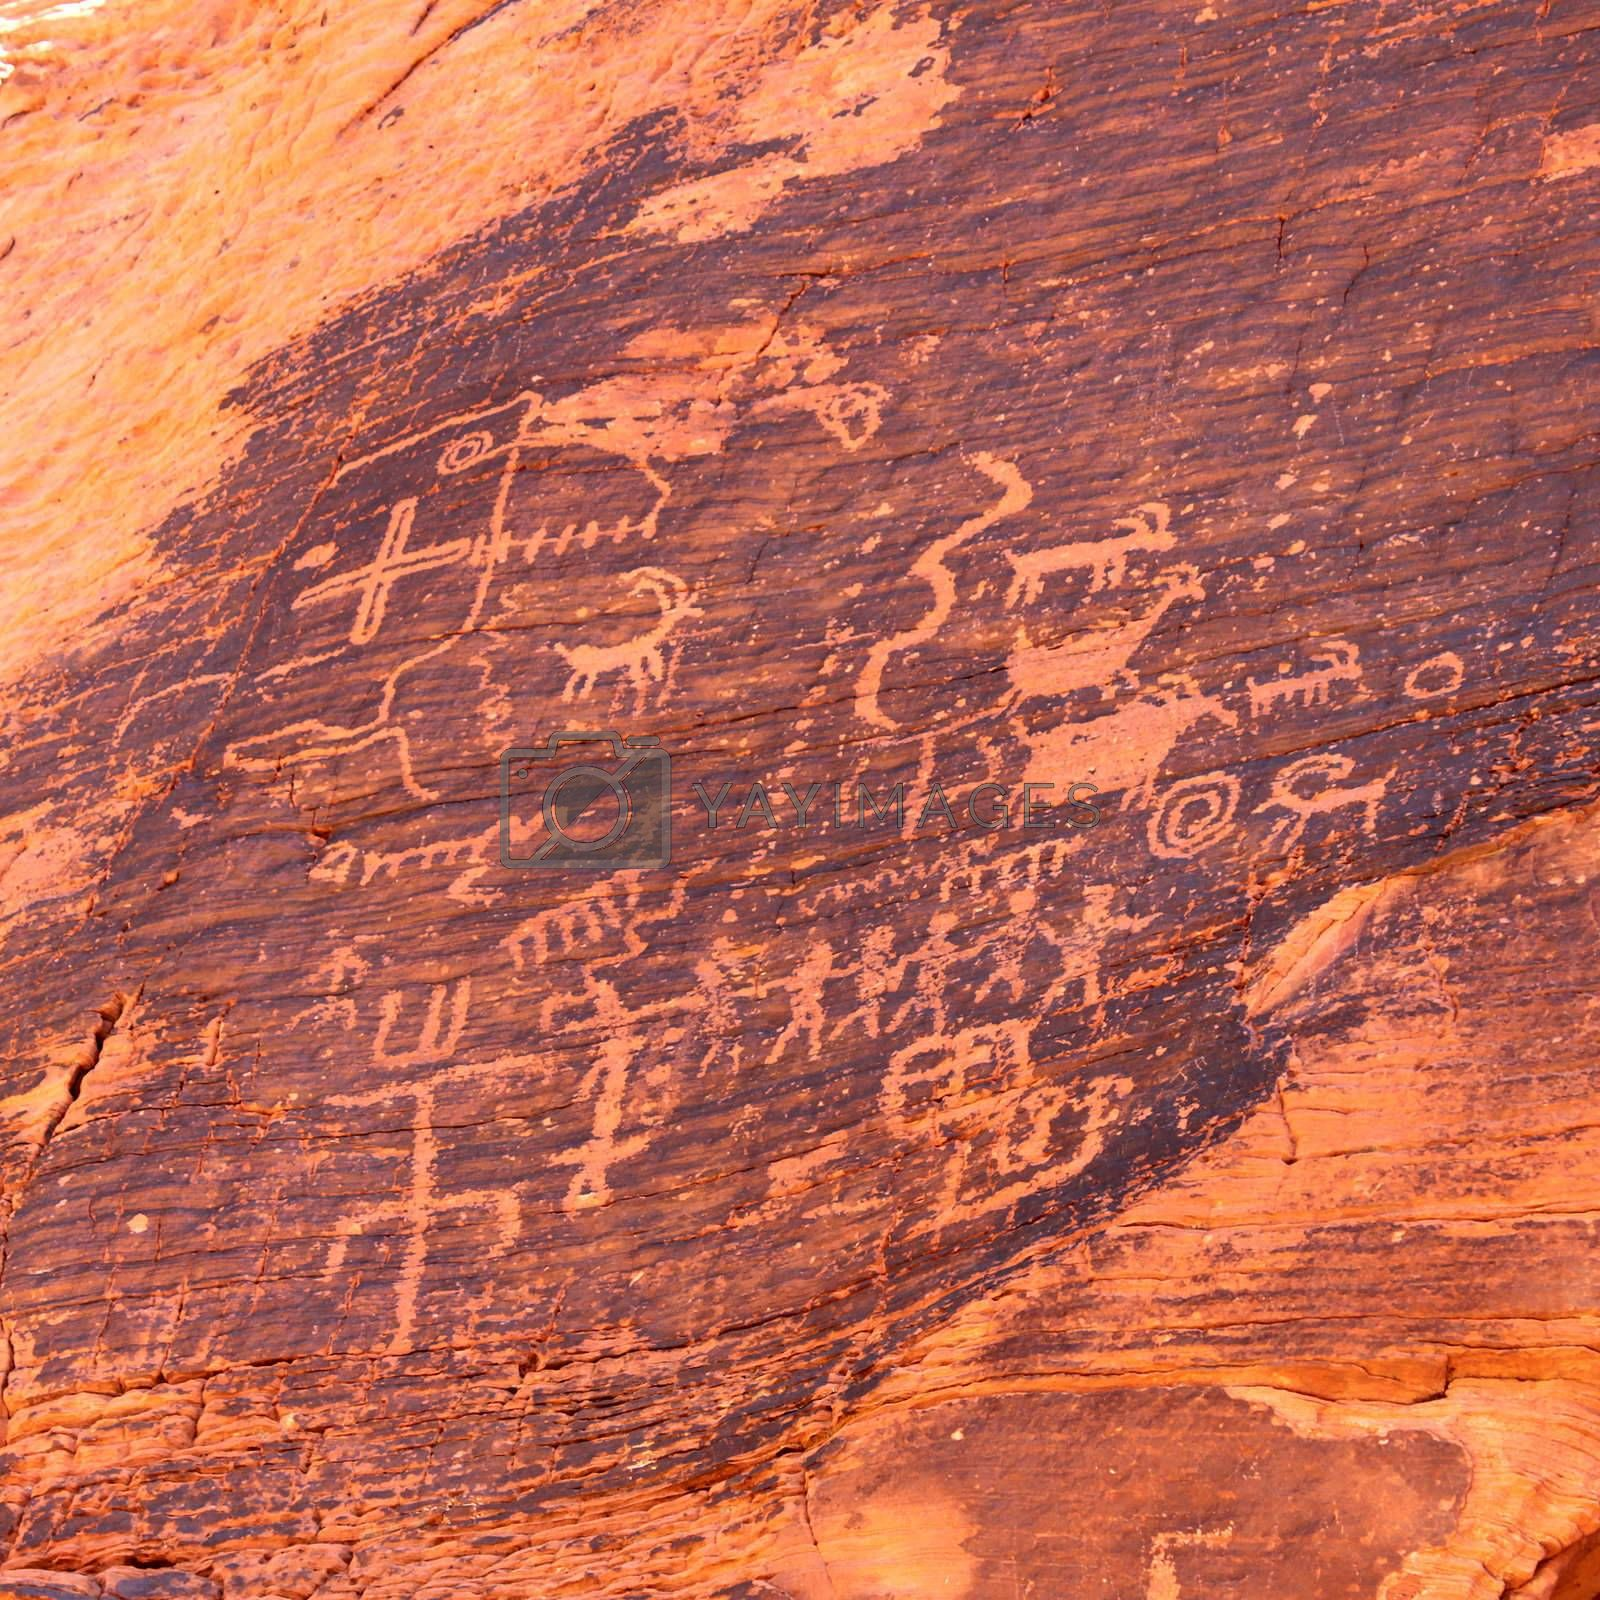 Strange petroglyphs on a rock wall at Valley of Fire State Park in Nevada.